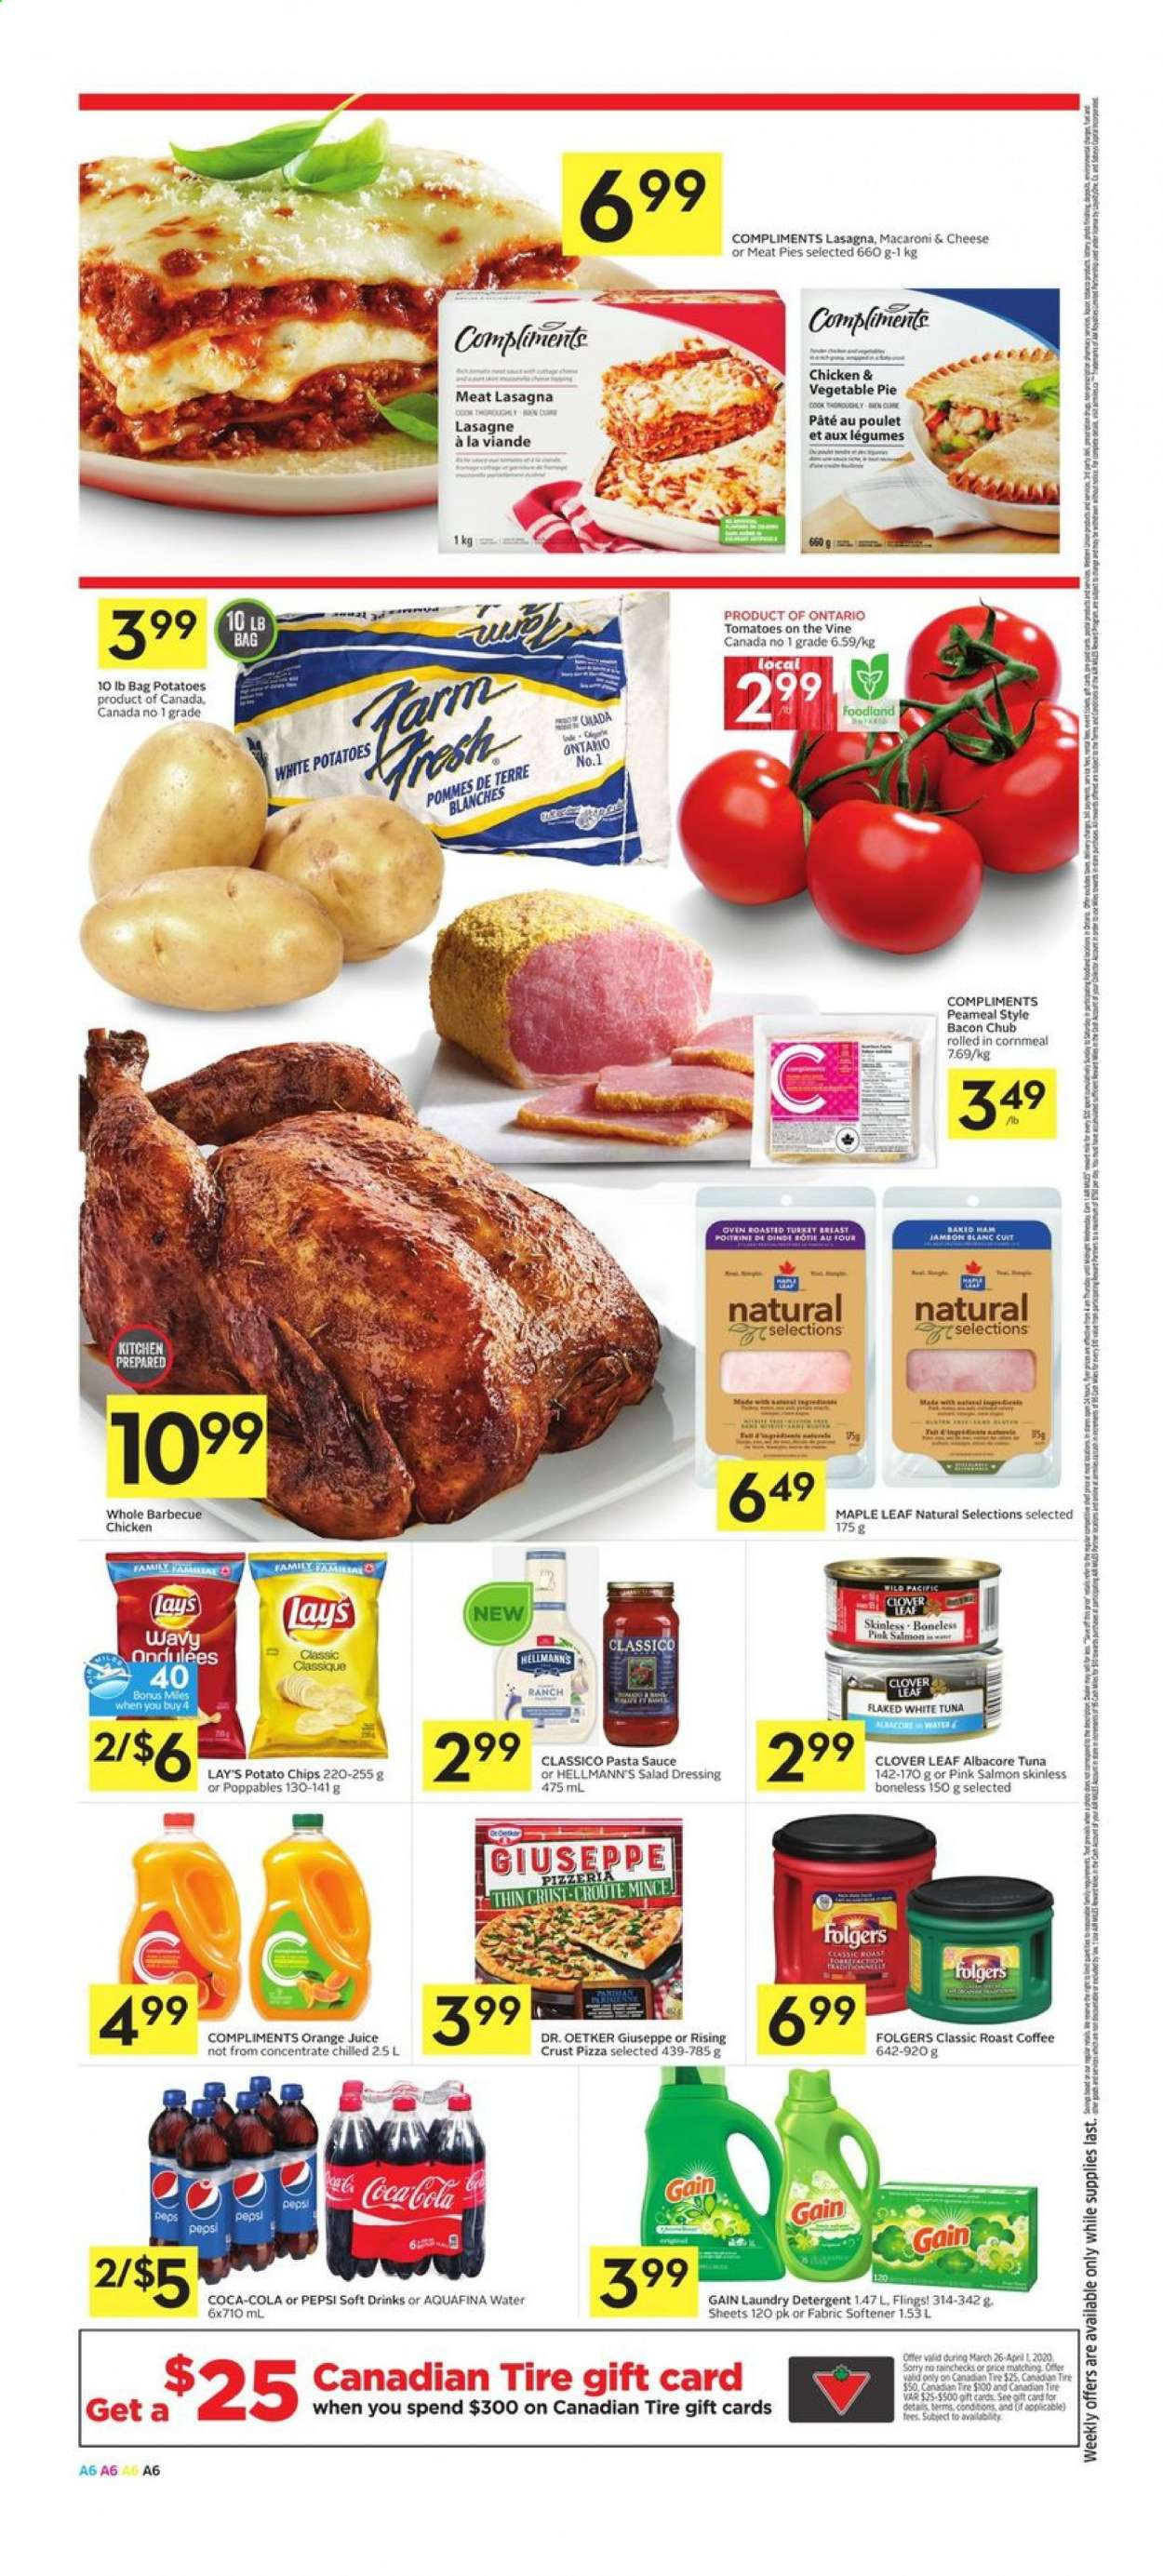 Foodland Flyer  - March 26, 2020 - April 01, 2020. Page 6.